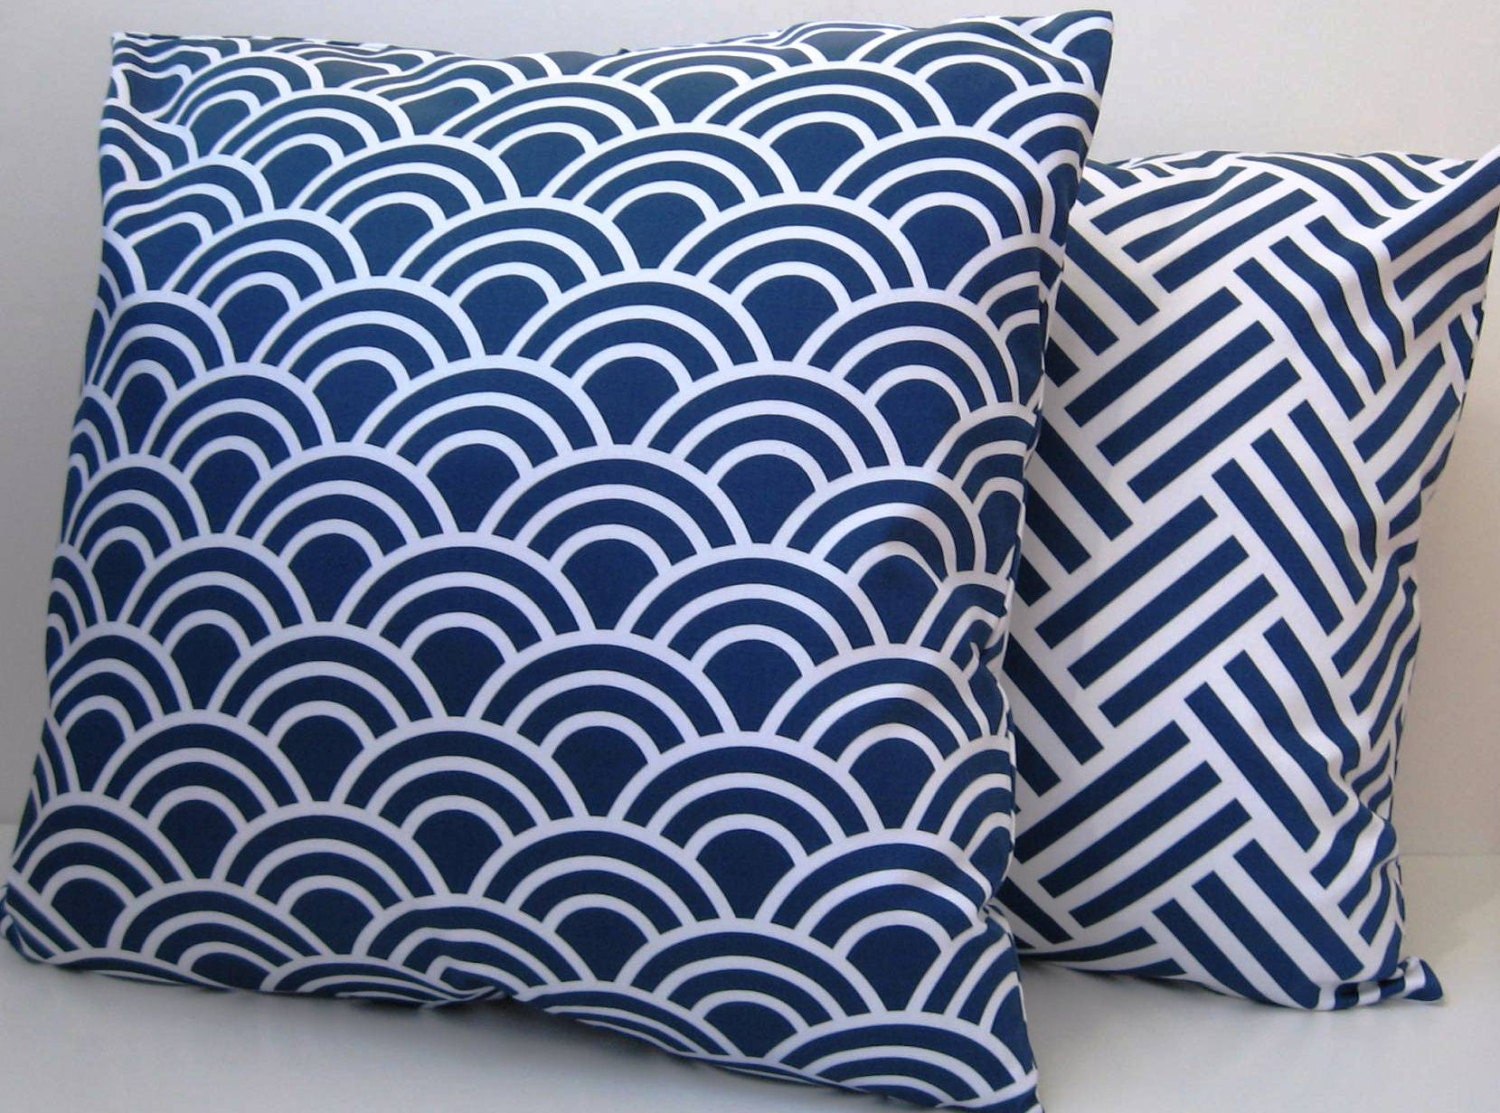 Modern White Pillow : Blue and White Pillow Cover Modern Pillow Decorative